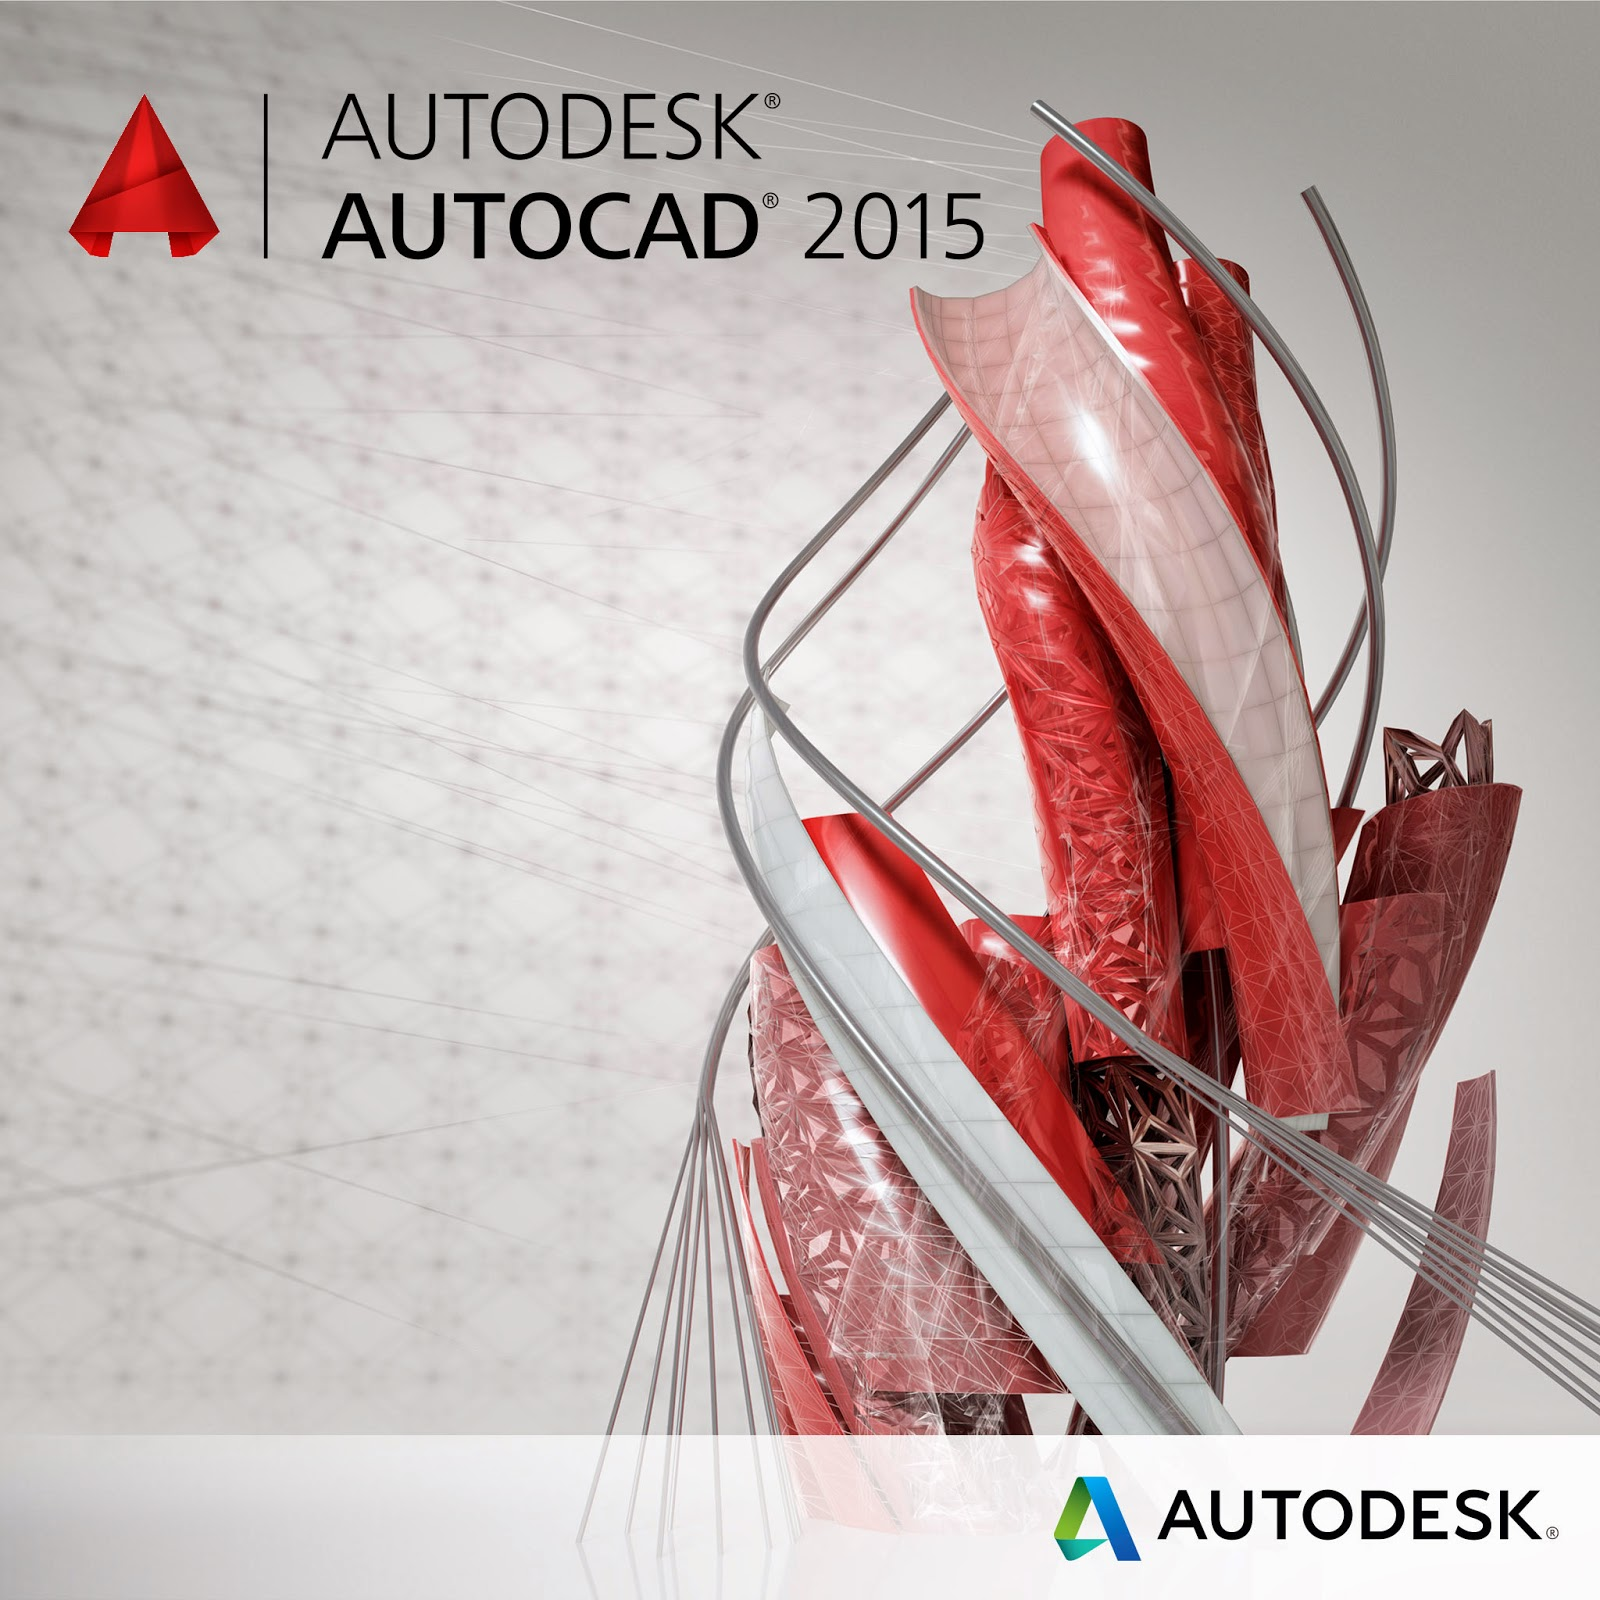 http://saved.im/mty3odk5bzri/autocad-2015-badge-2048px.jpg